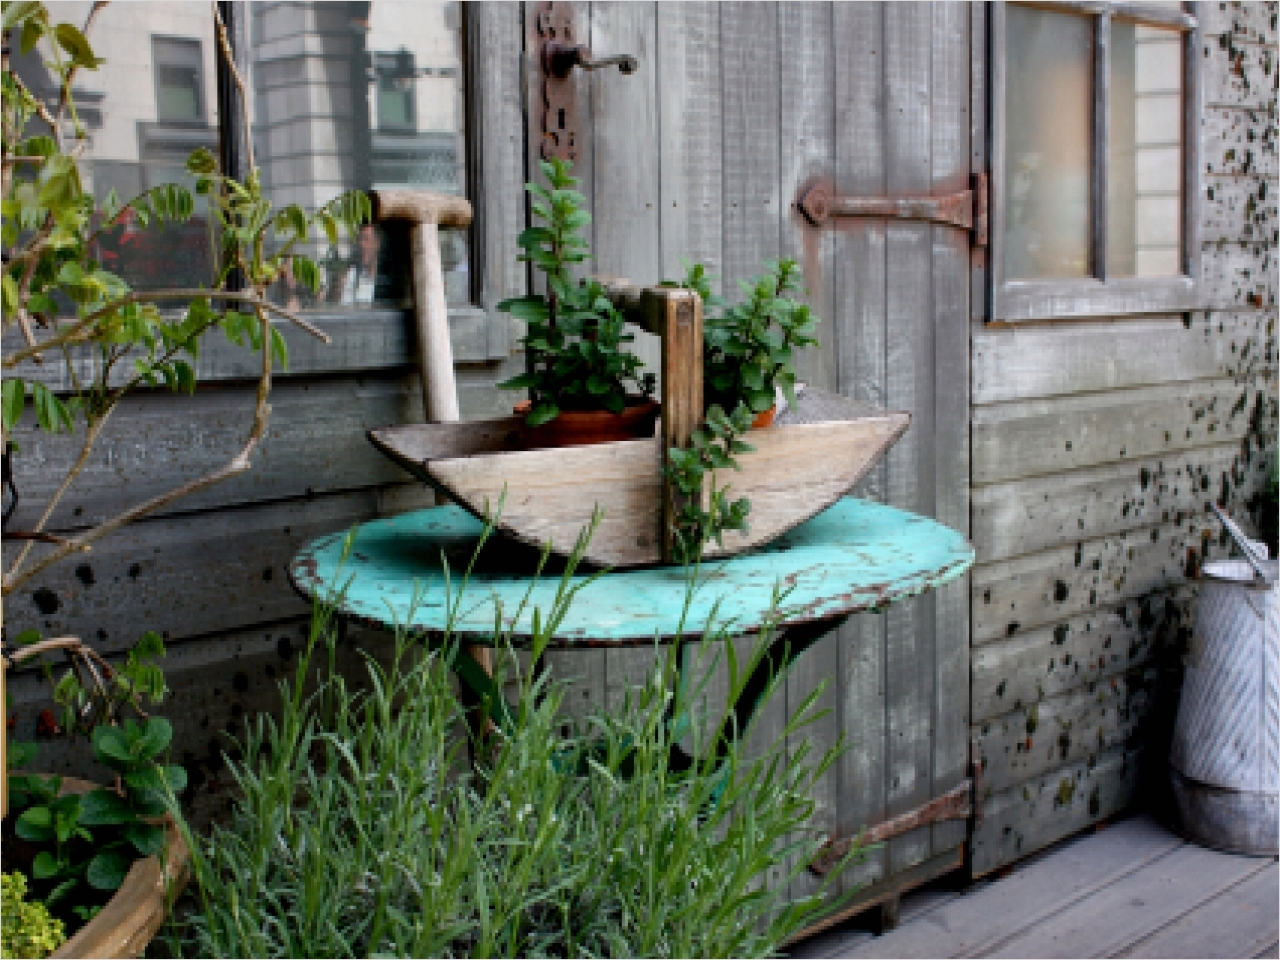 44 Amazing Rustic Garden Ideas 52 Rustic Garden Decor Ideas 4